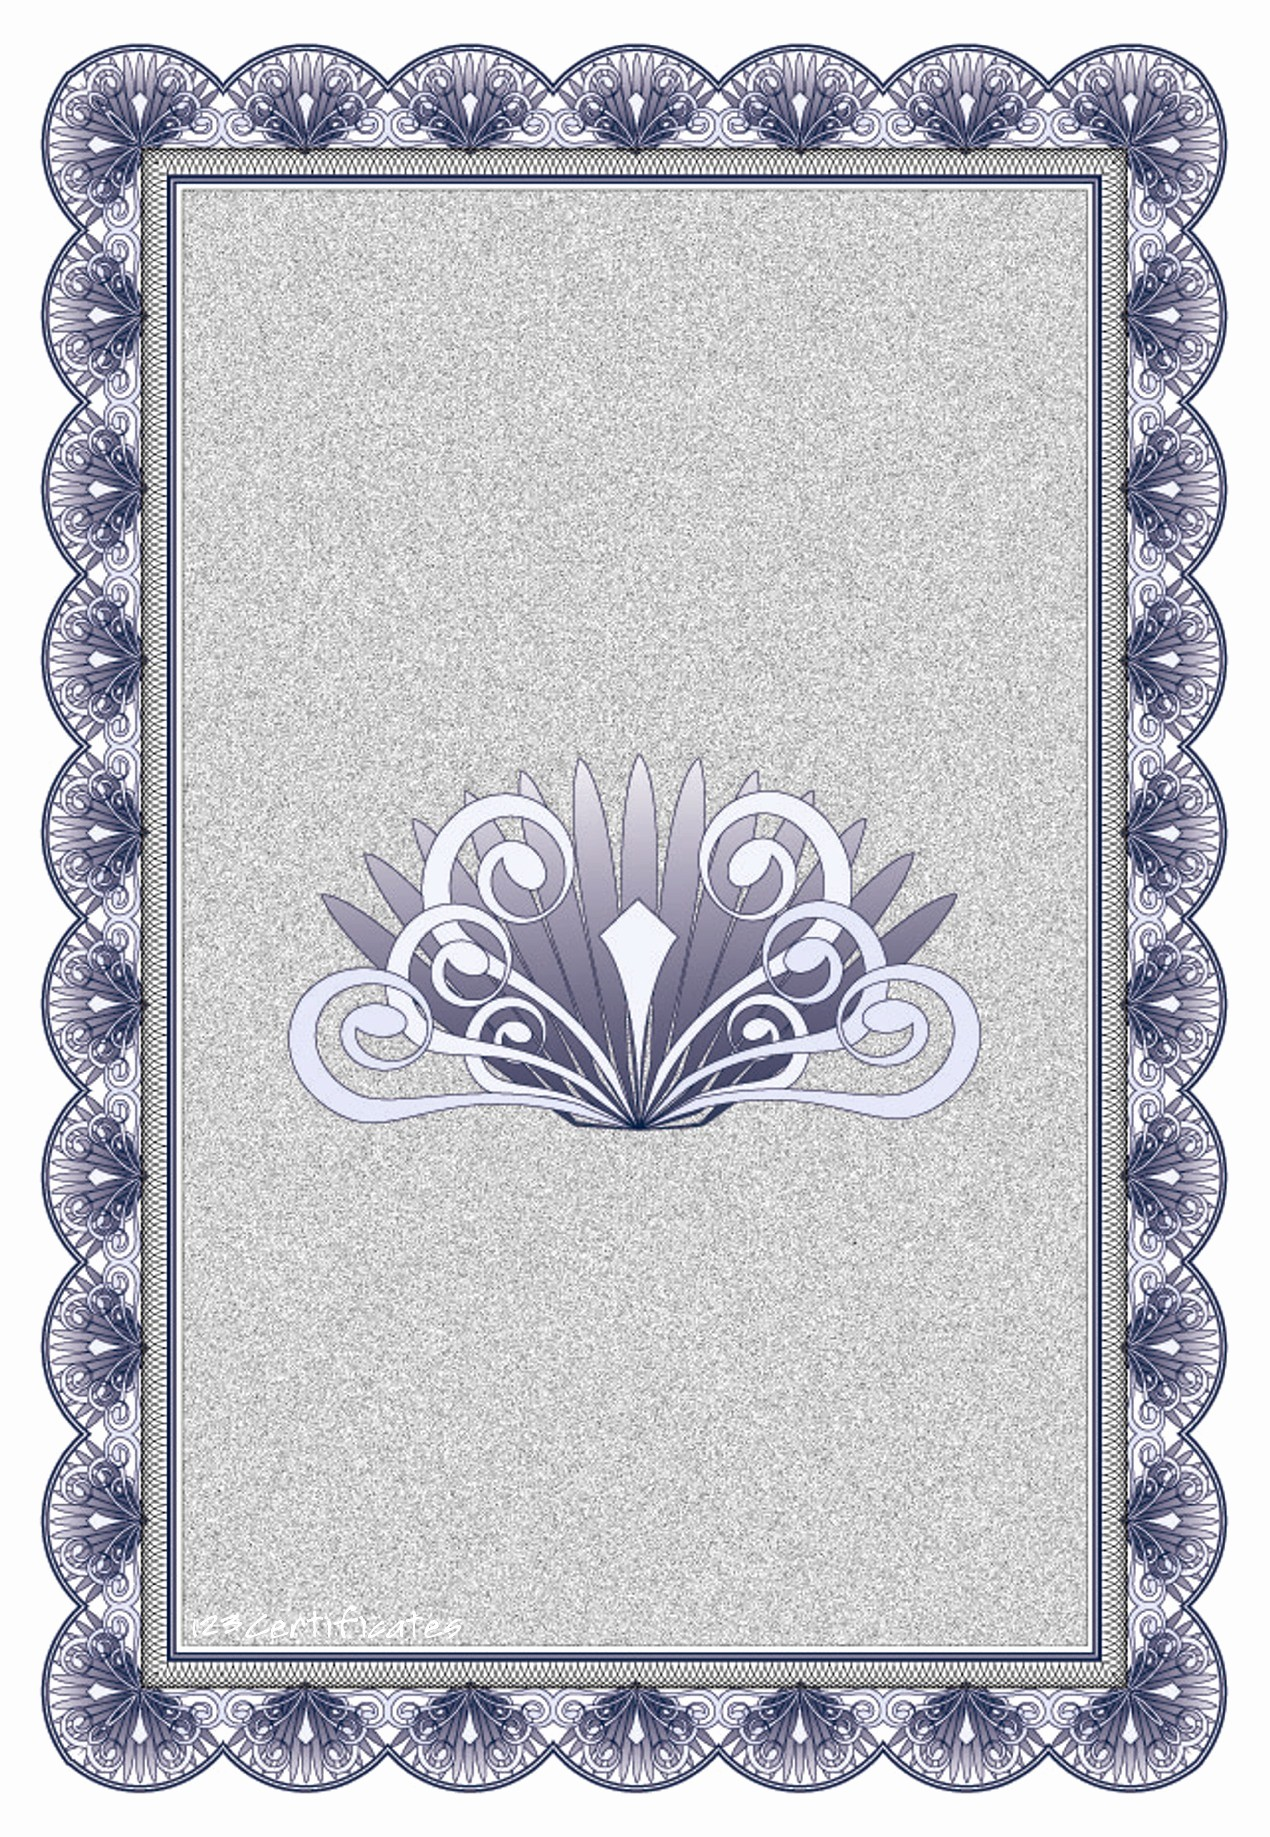 Certificate Border Design Free Download Fresh top 10 Free Certificate Borders for All Occasions